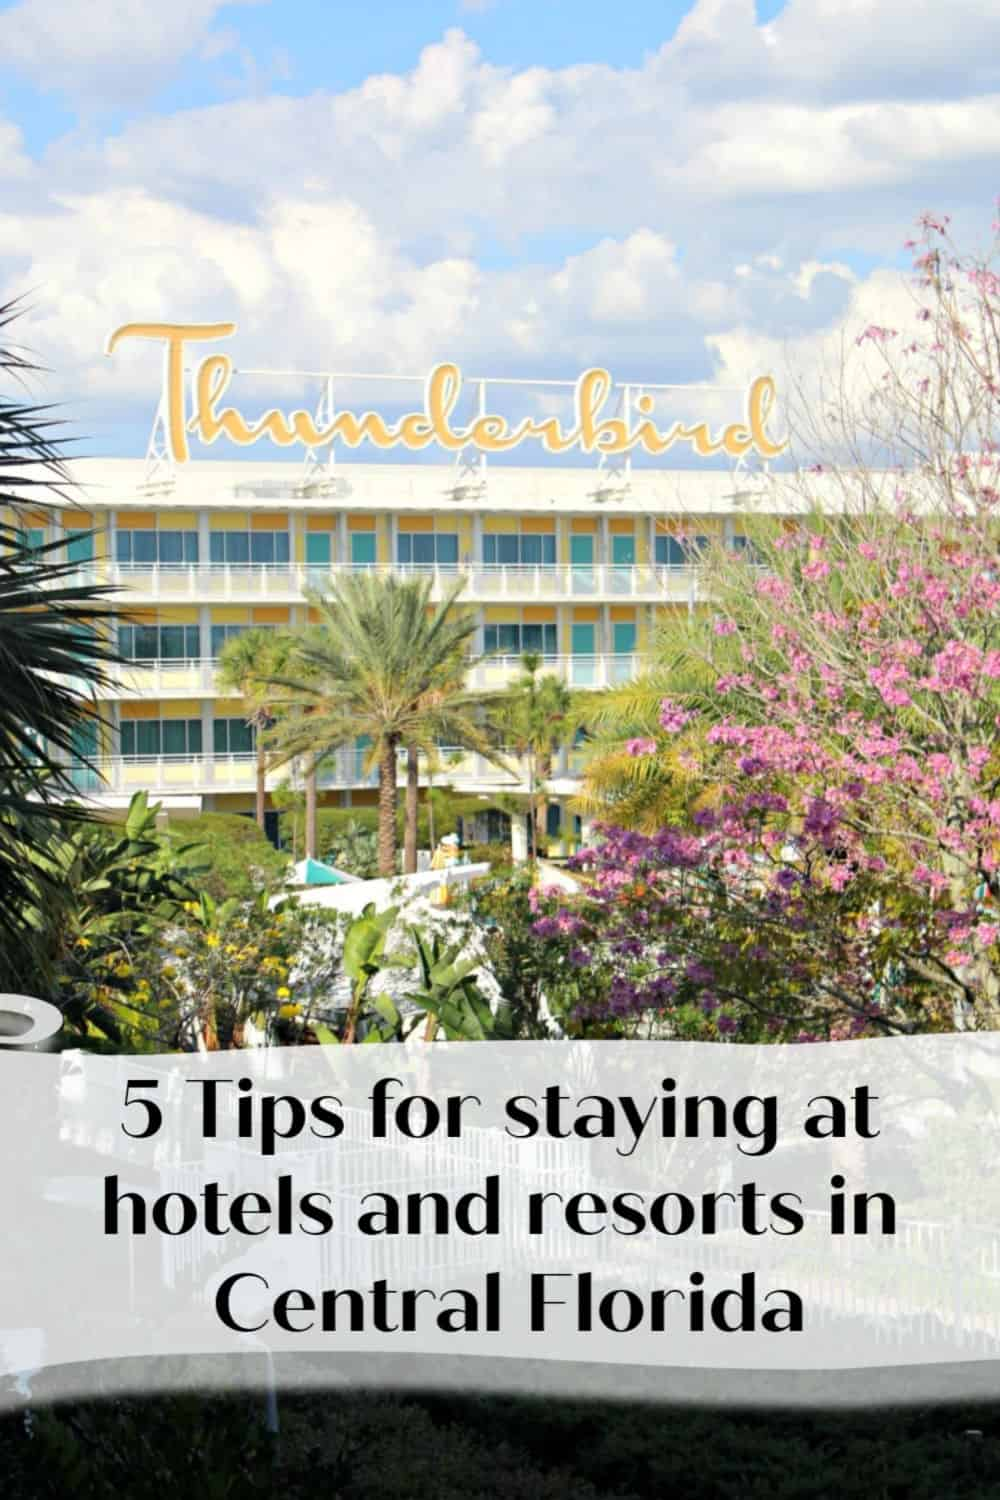 5 Tips for staying at hotels and resorts in Central Florida